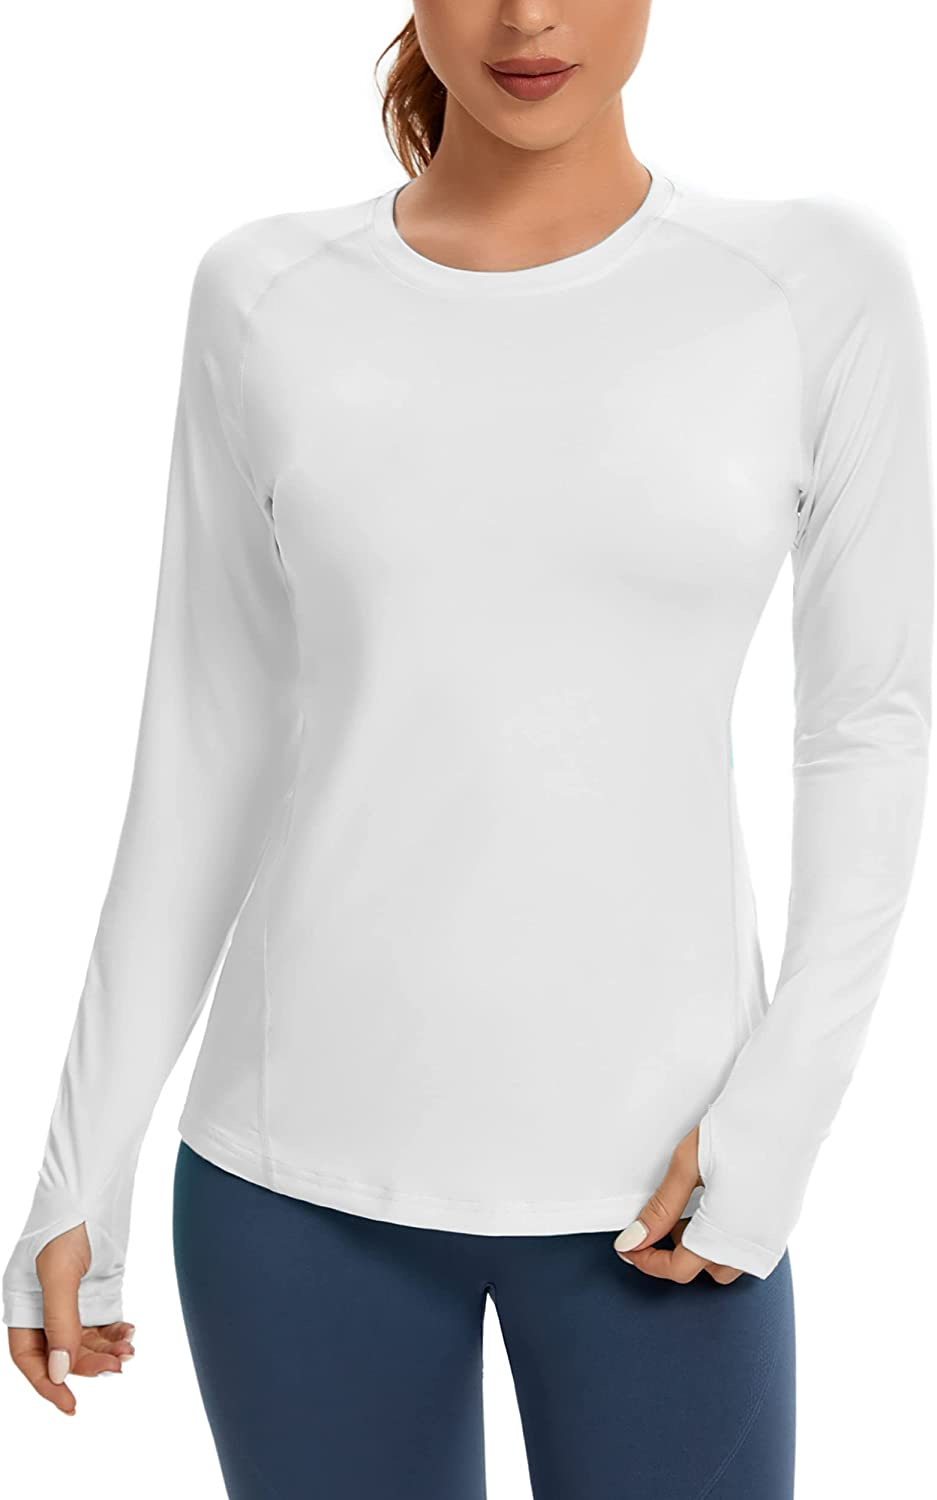 MIVEI Women's UPF 50 Long Sleeve Sun Shirt Guard Dry Popular Recommendation shop is the lowest price challenge Rash Quick